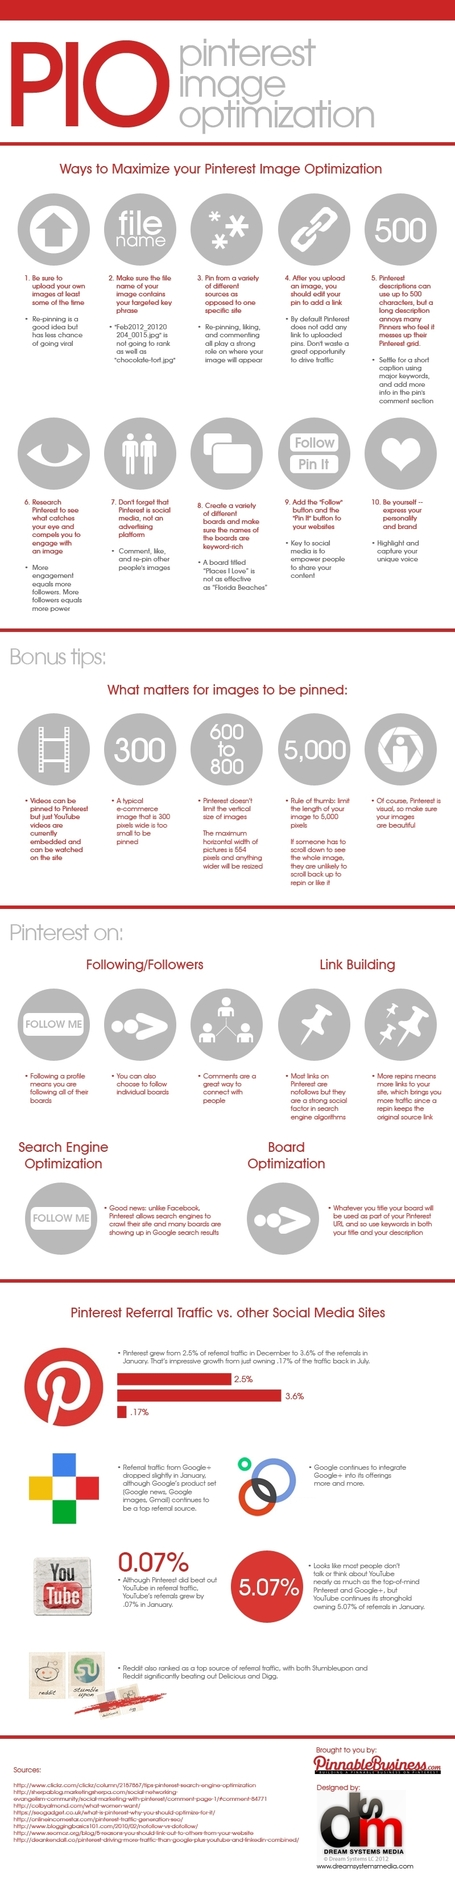 Pinterest Image Optimization [Infographic] | Managing options | Scoop.it